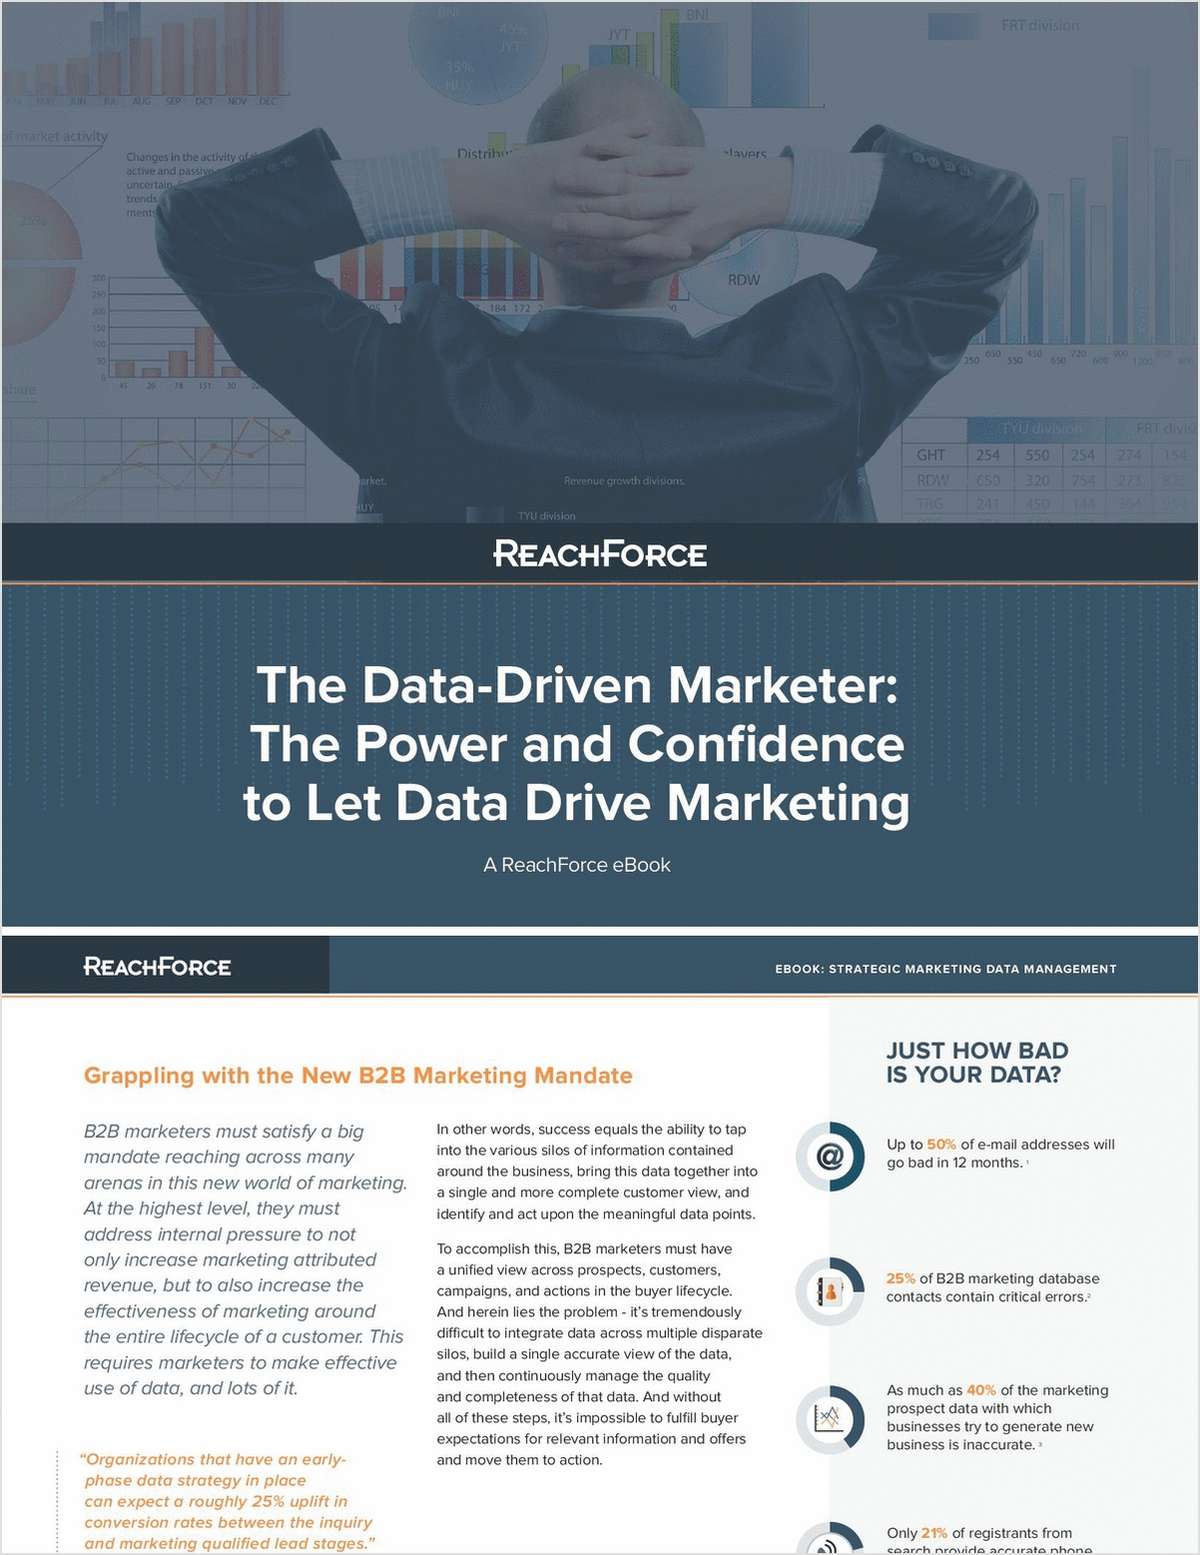 The Data-Driven Marketer: The Power and Confidence to Let Data Drive Marketing